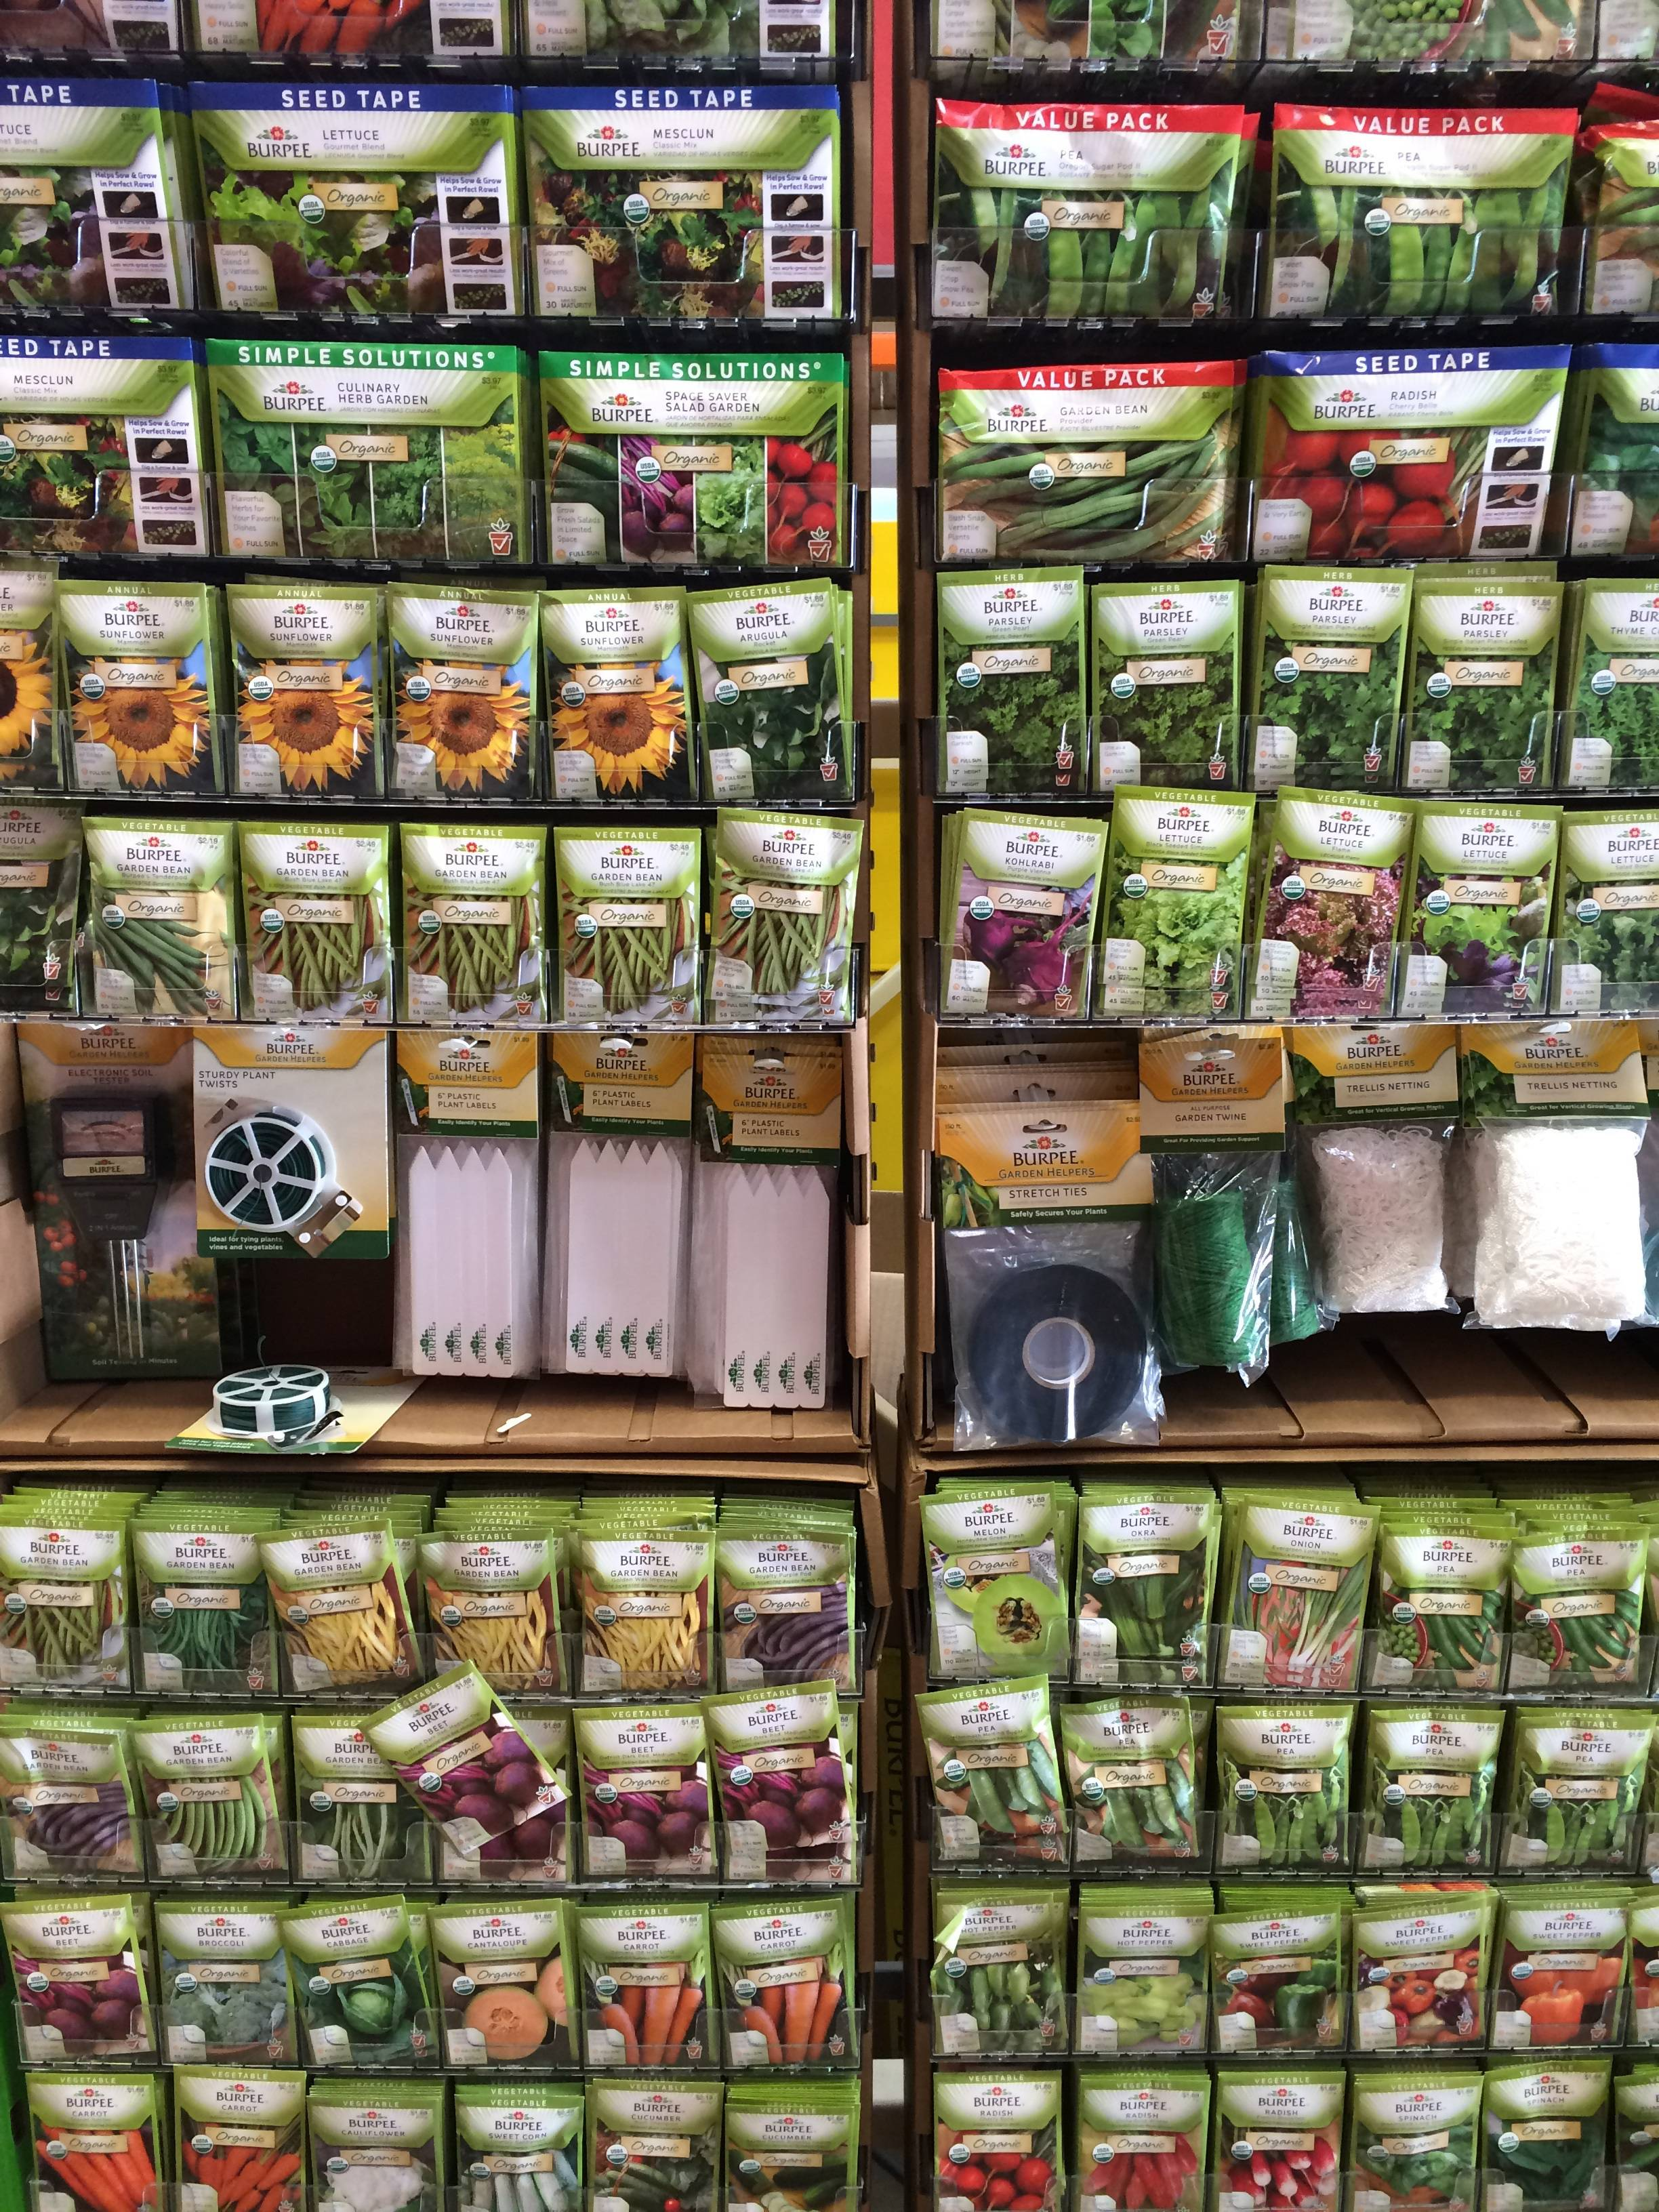 Though it's too early to start vegetable seeds for the spring, they're now available in stores, online and in catalogs.